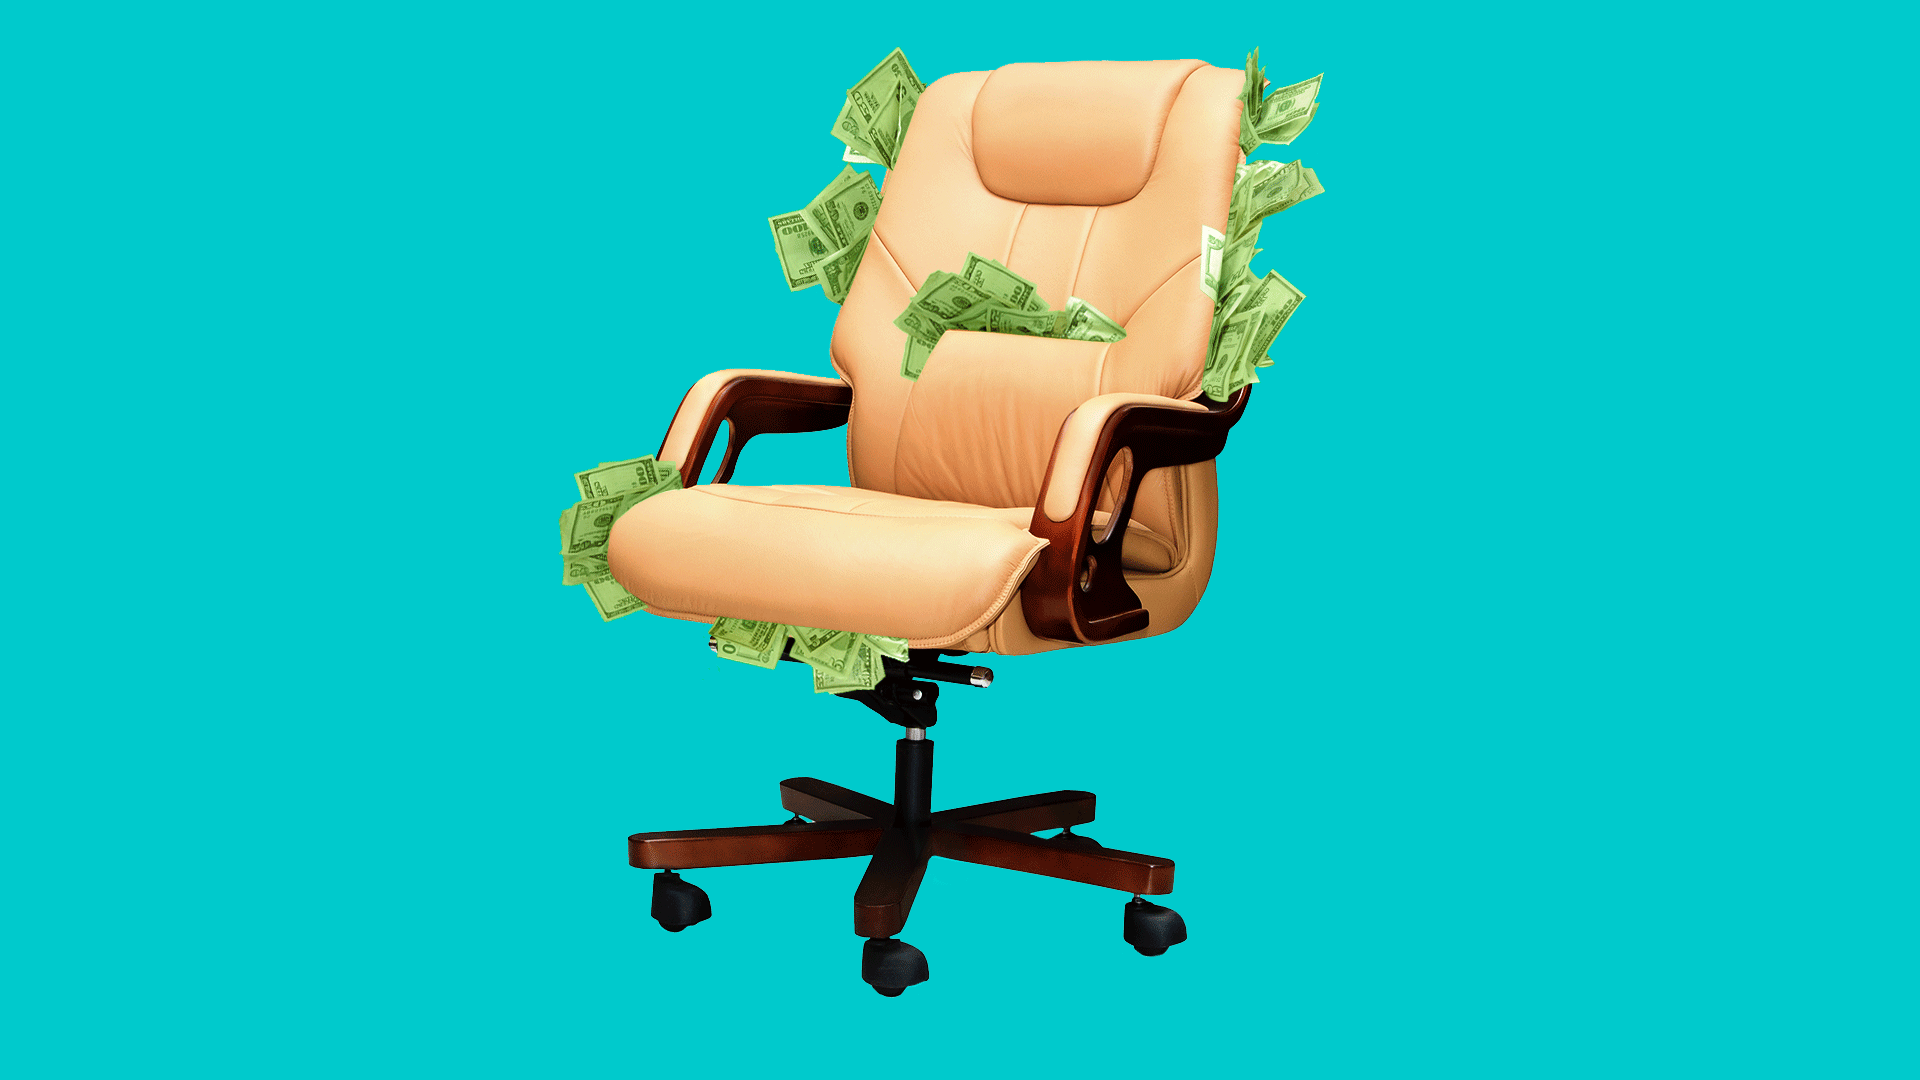 Illustration of a luxurious leather office chair bursting at the seams with cash.